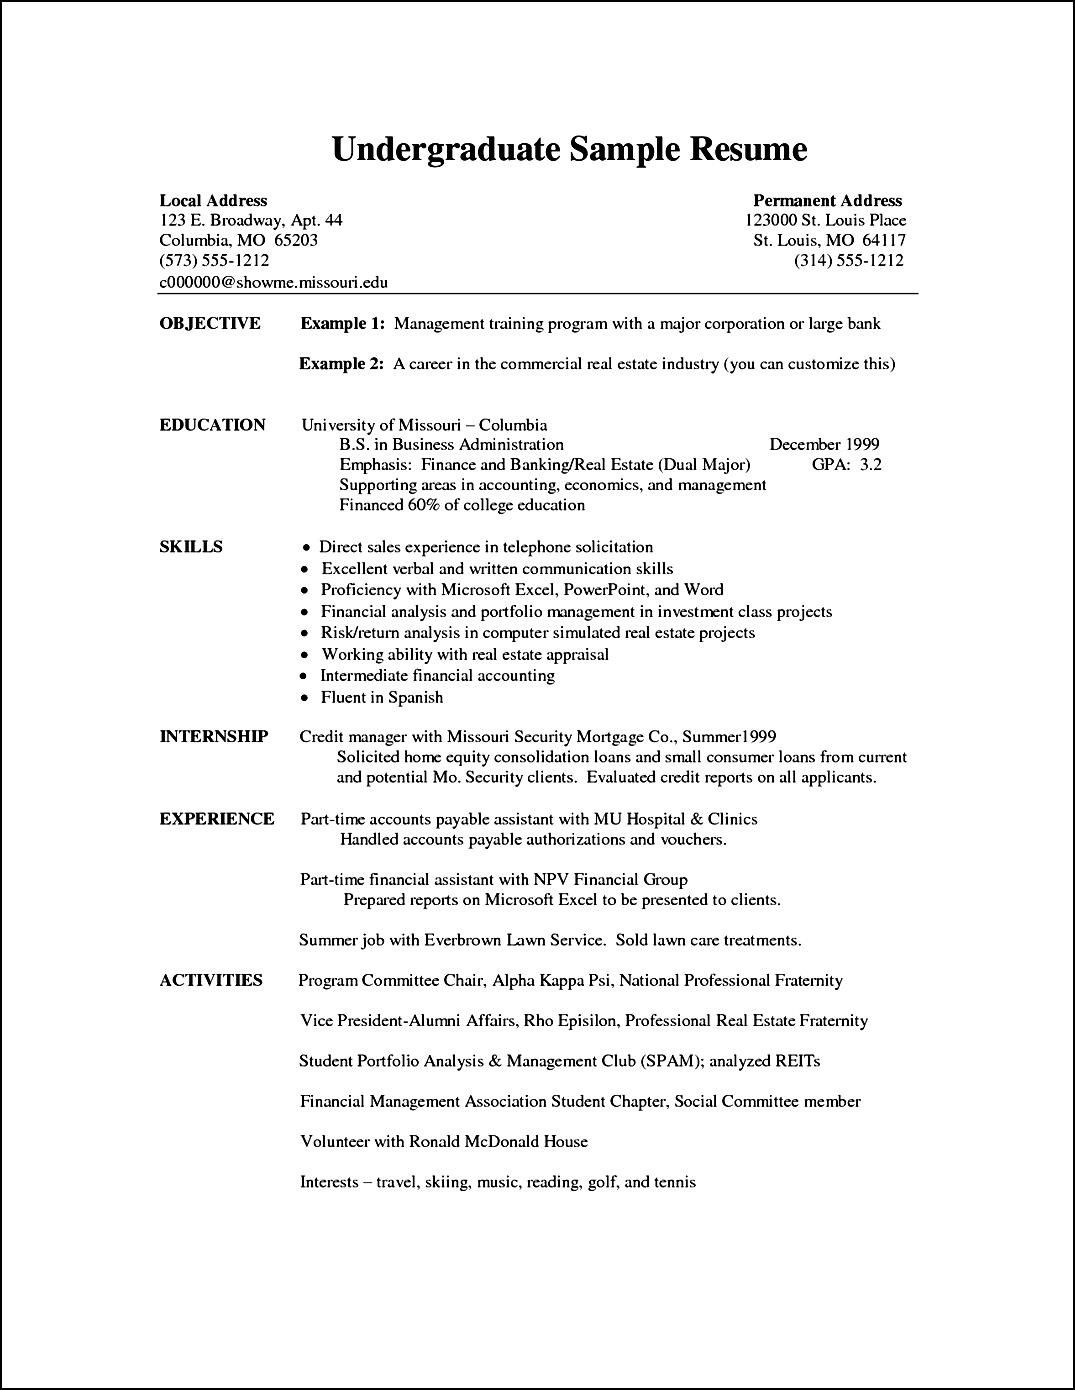 Samples Of Curriculum Vitae Sample Resume Undergraduate Cover Letter For Vitae  Home Design